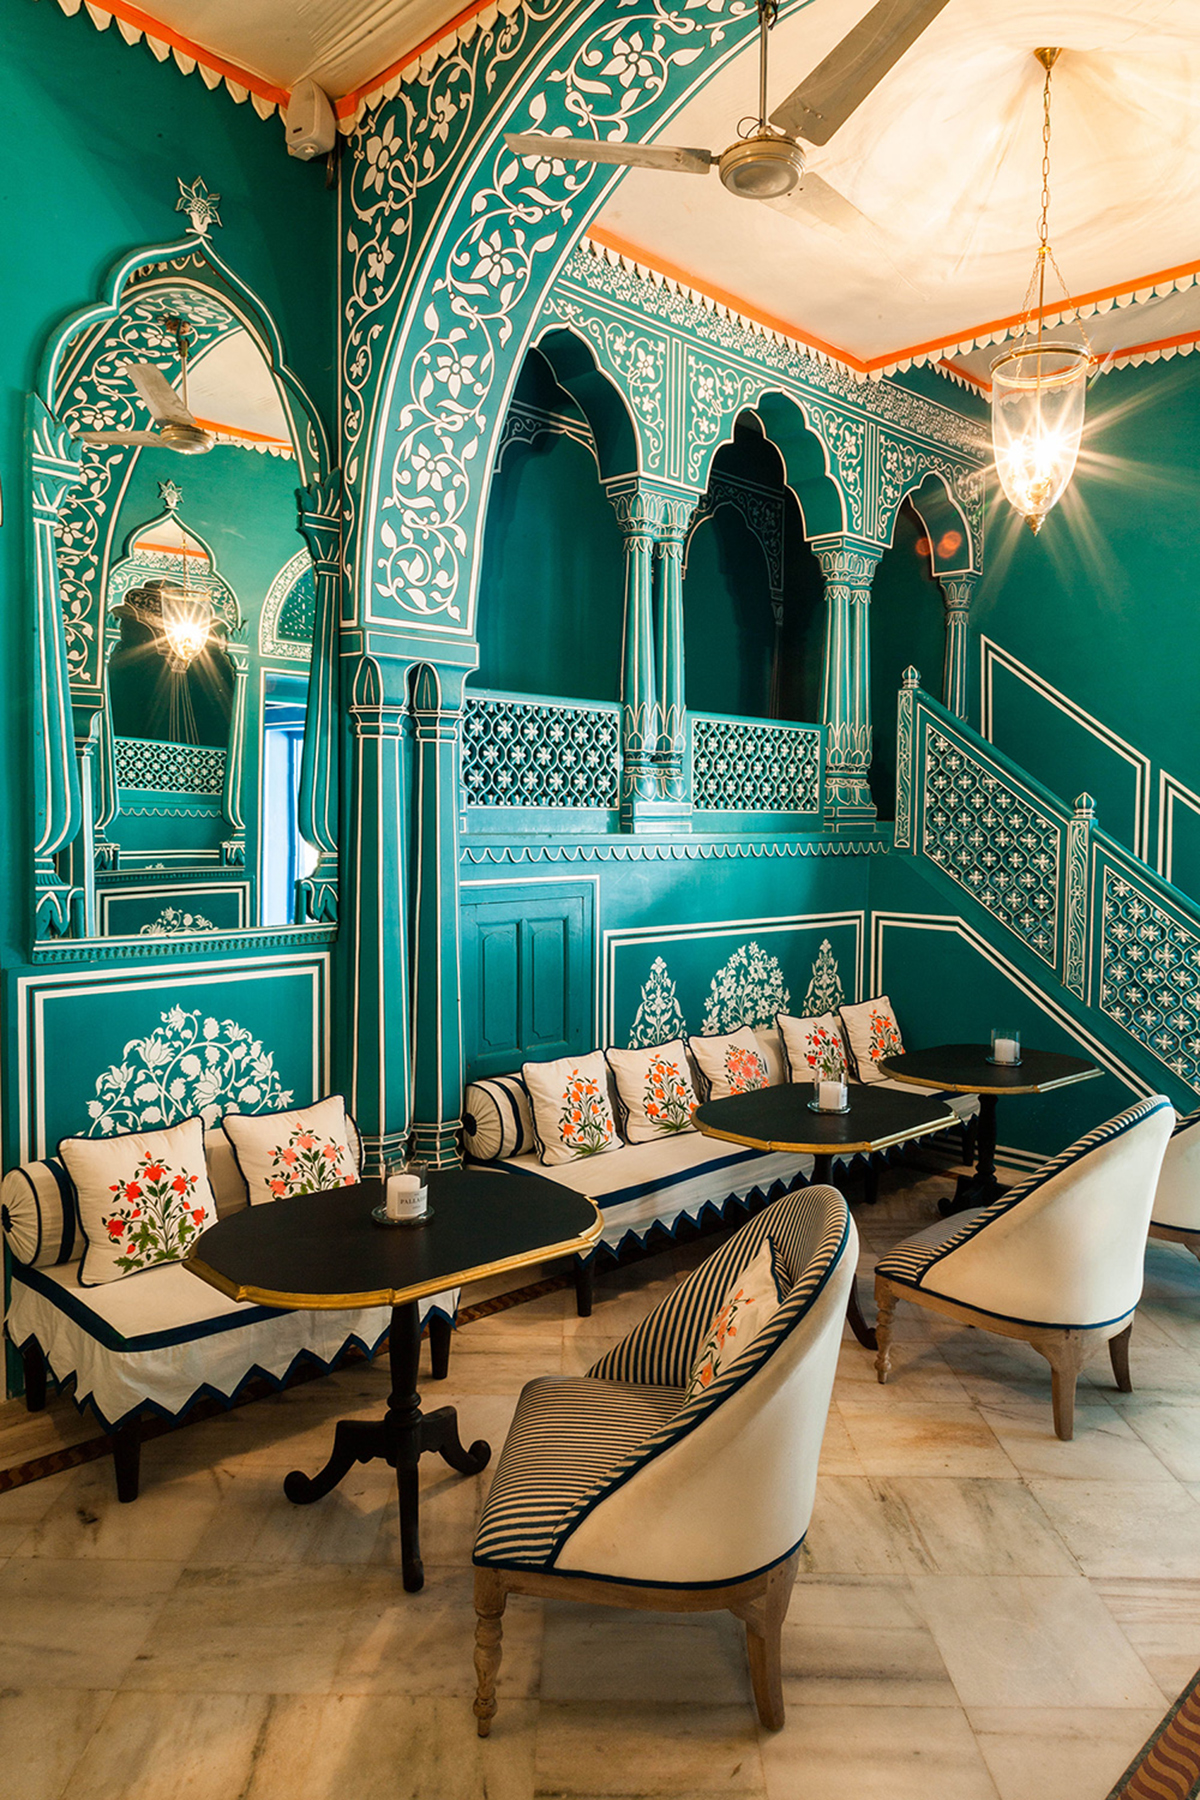 Bar-Palladio-Jaipur-travelmodus-3